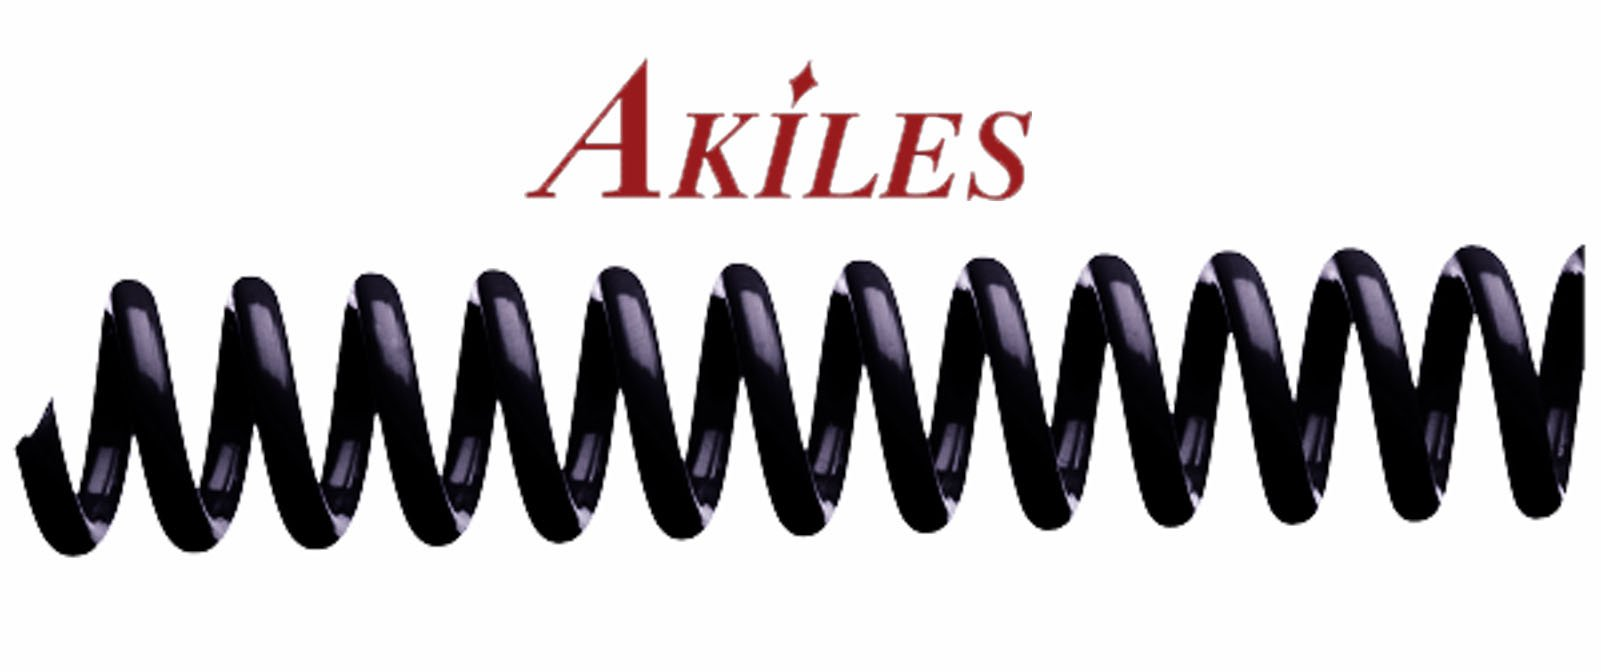 Akiles Spiral Coil Binding Spines 13mm (1/2 x 12-inch) 4:1 (pk of 100) Black